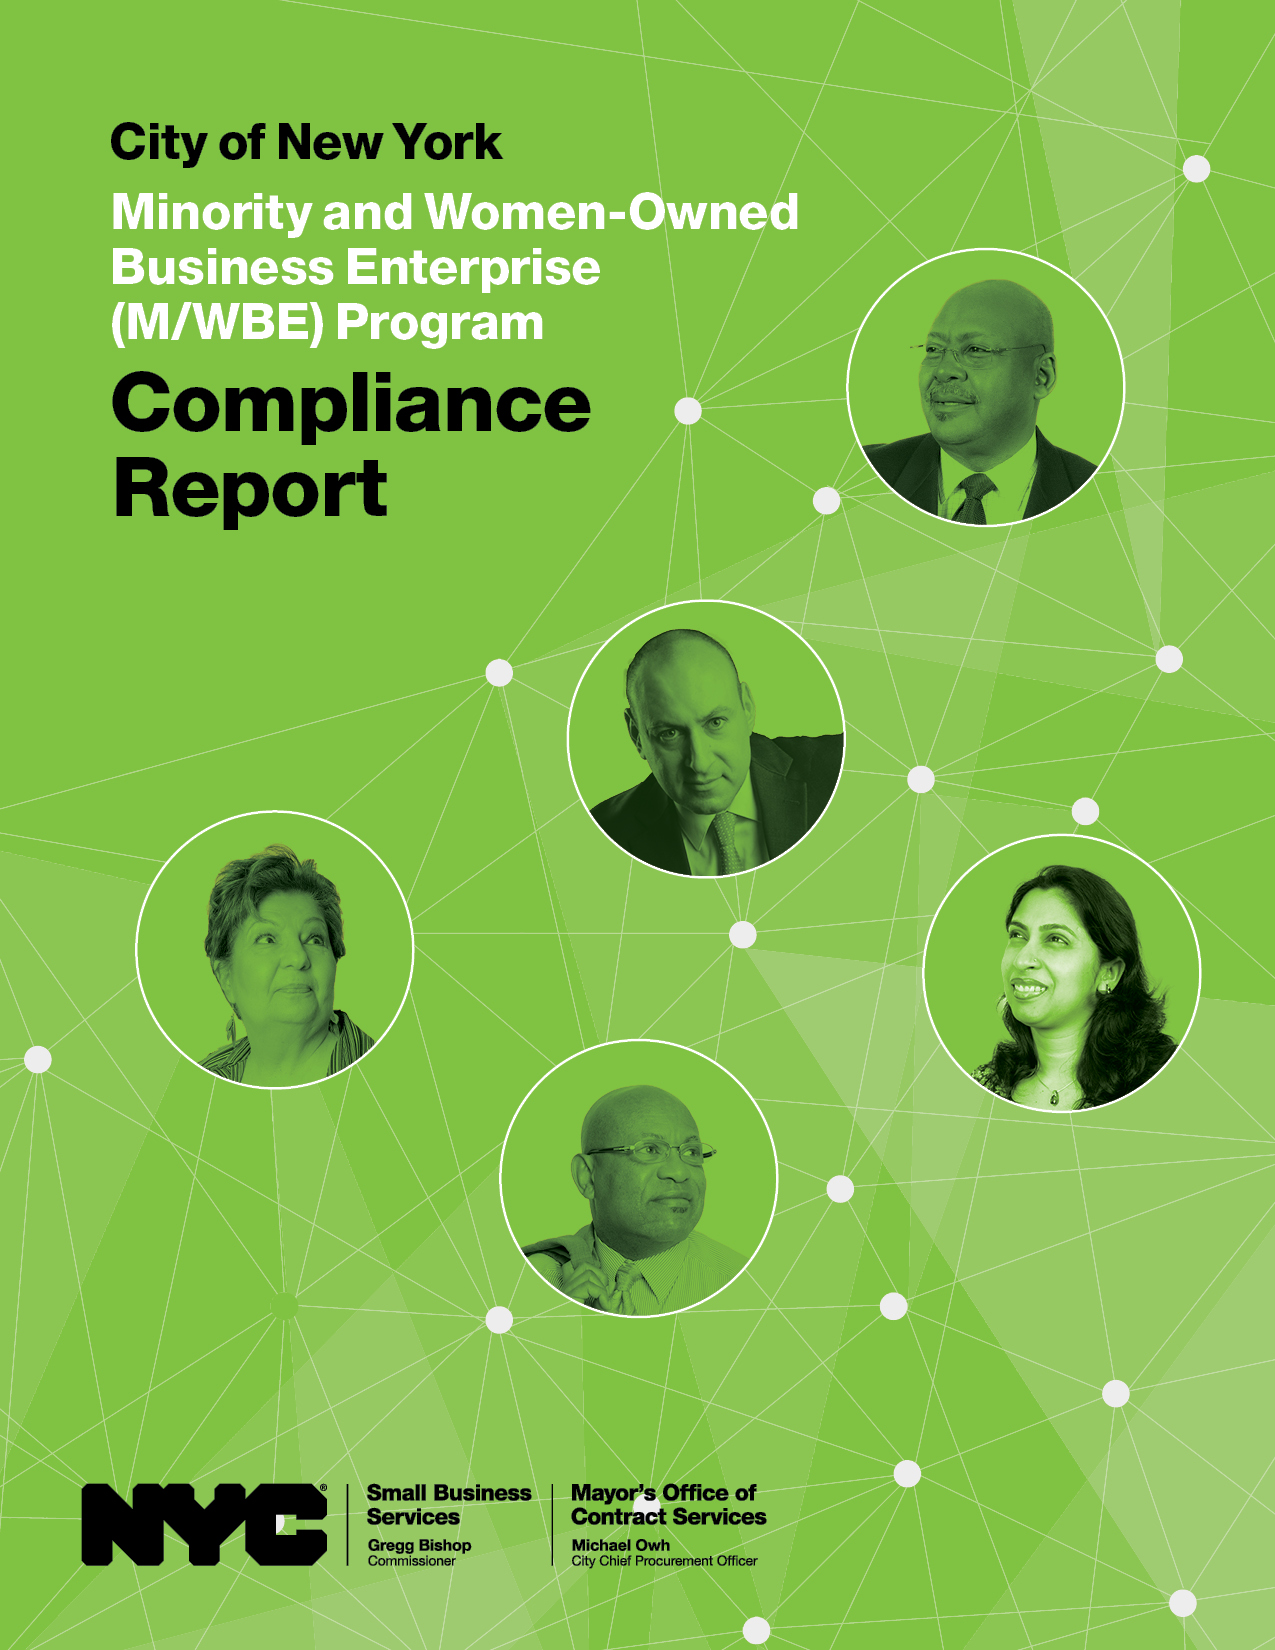 City of New York MWBE Compliance Report cover with green background featuring faces of five diverse business owners